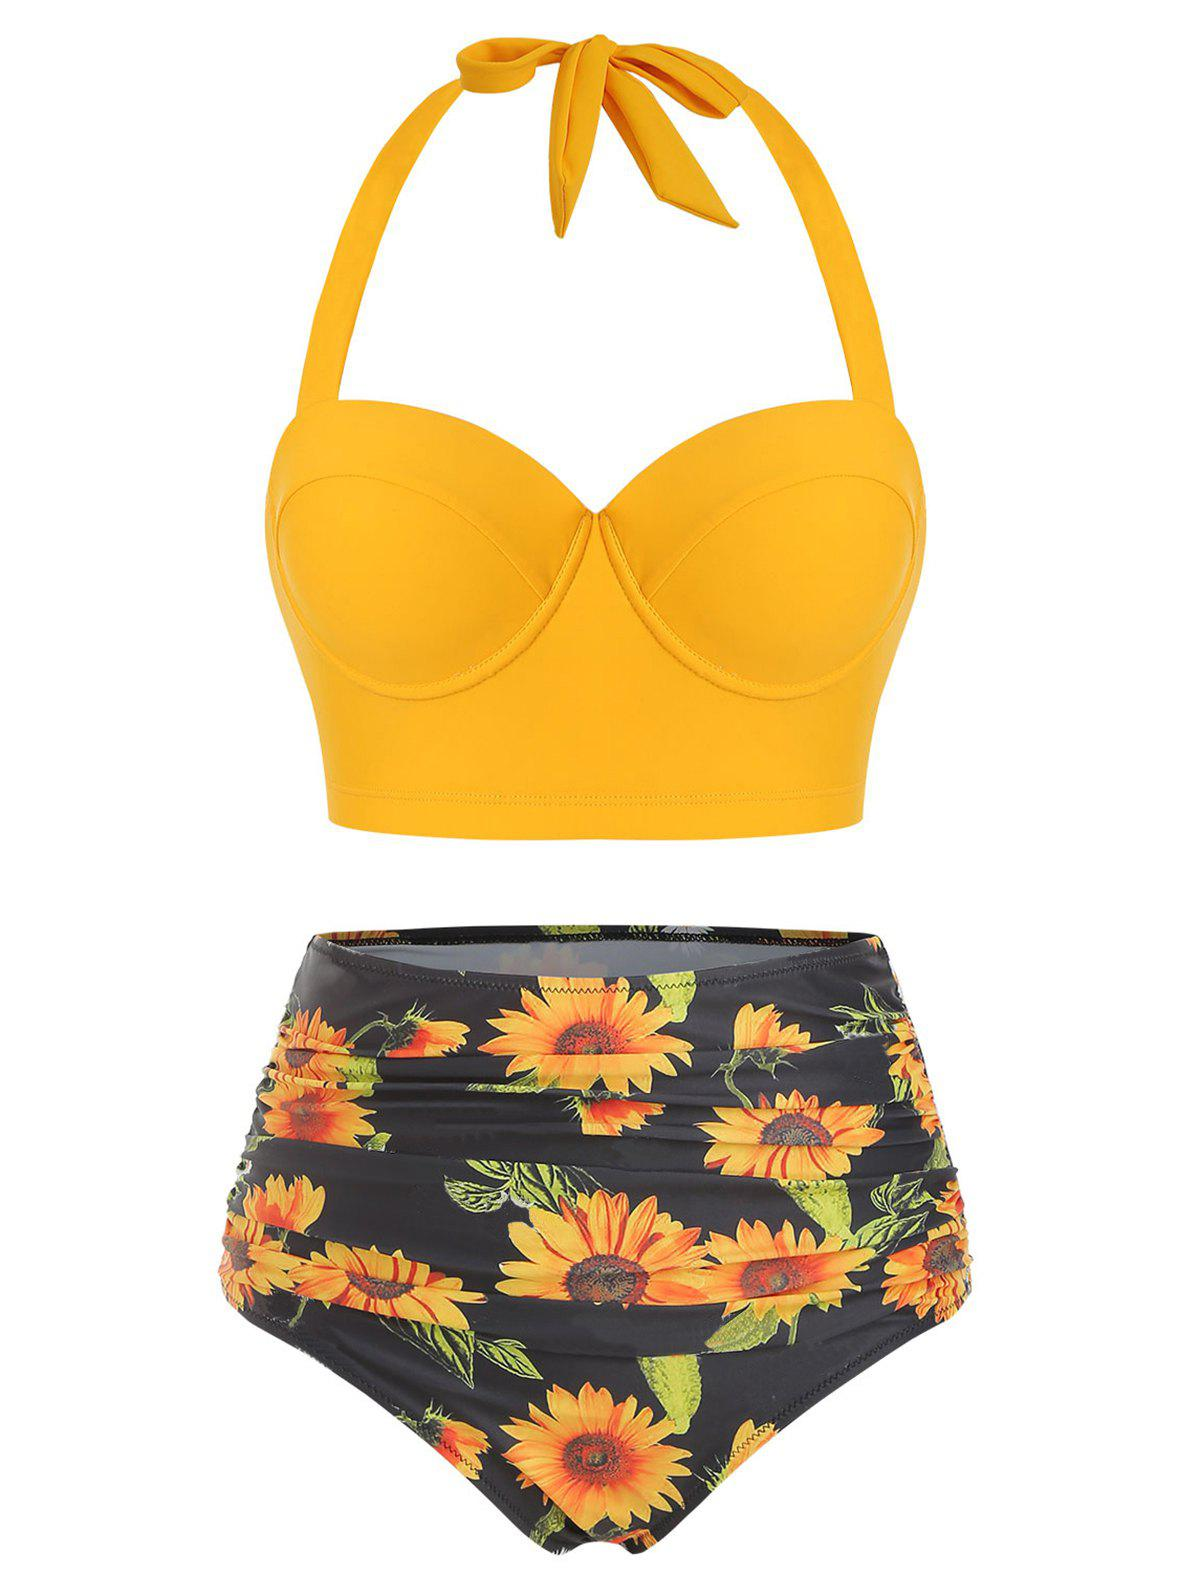 Sunflower Print Ruched Halter Bikini Swimsuit - YELLOW M